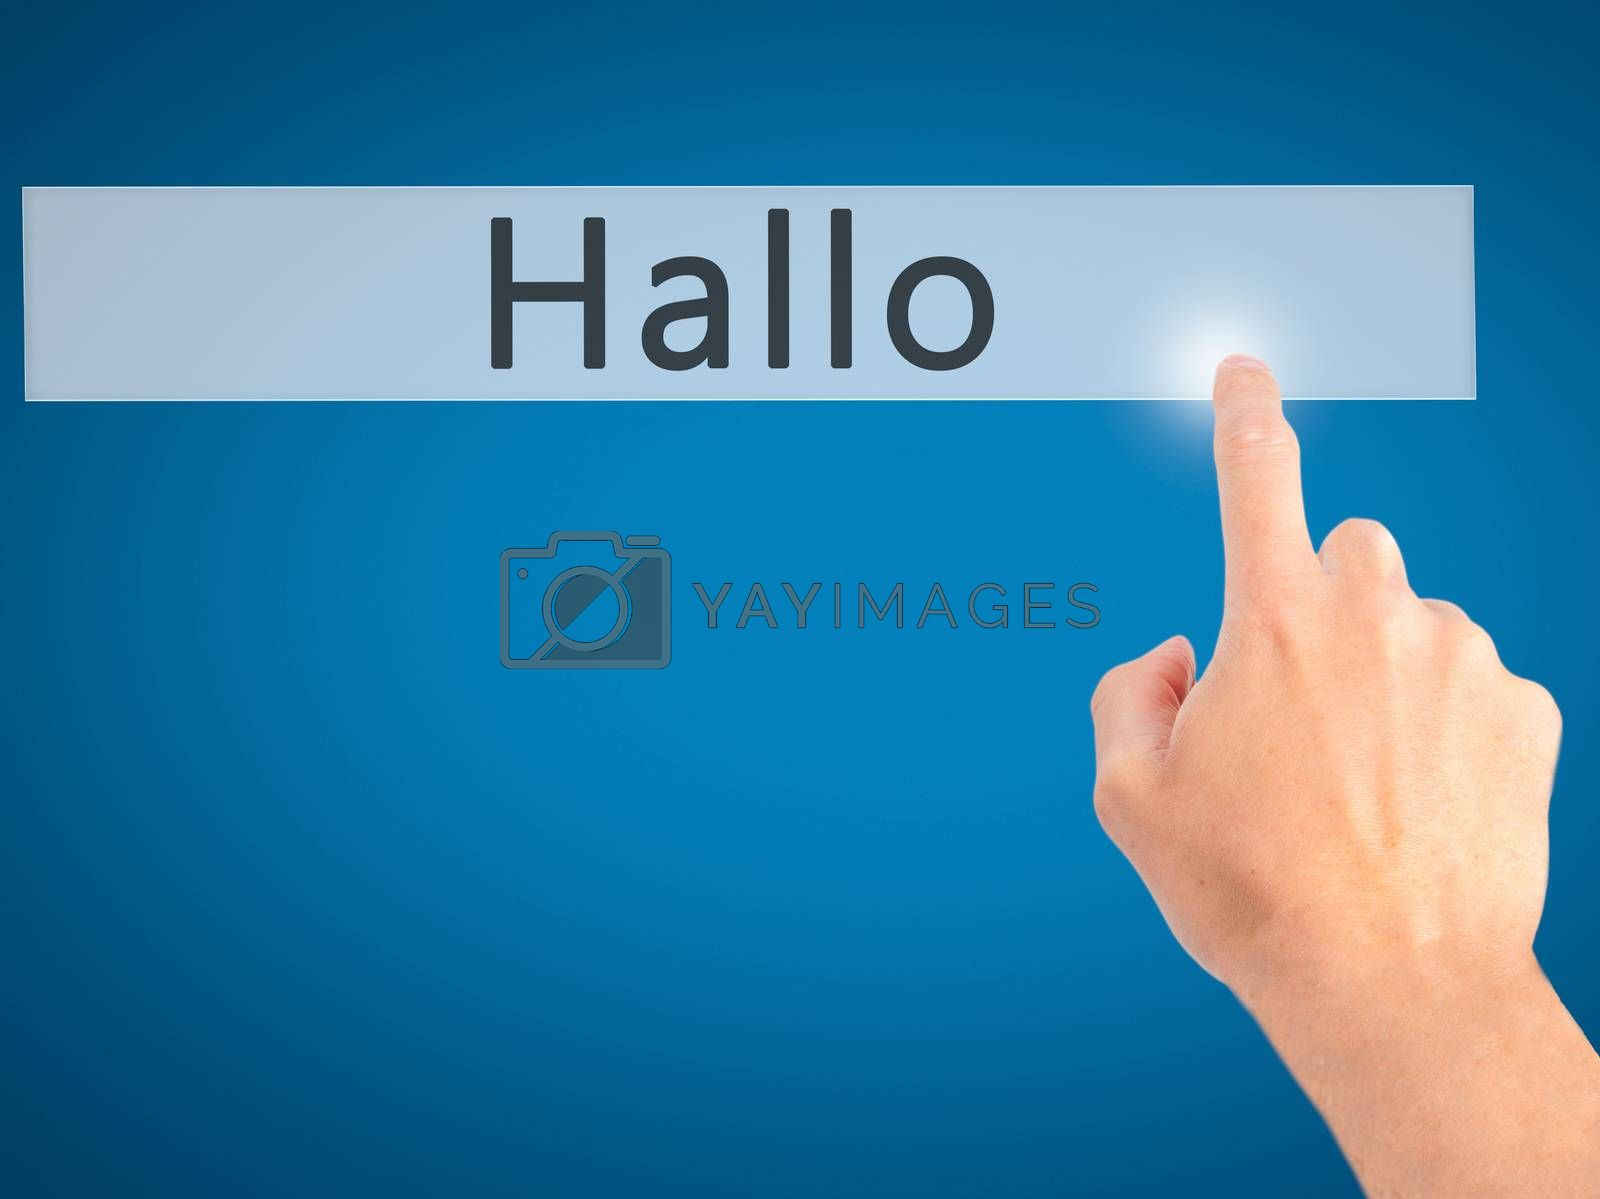 Hallo (Hello in German) - Hand pressing a button on blurred back by jackald